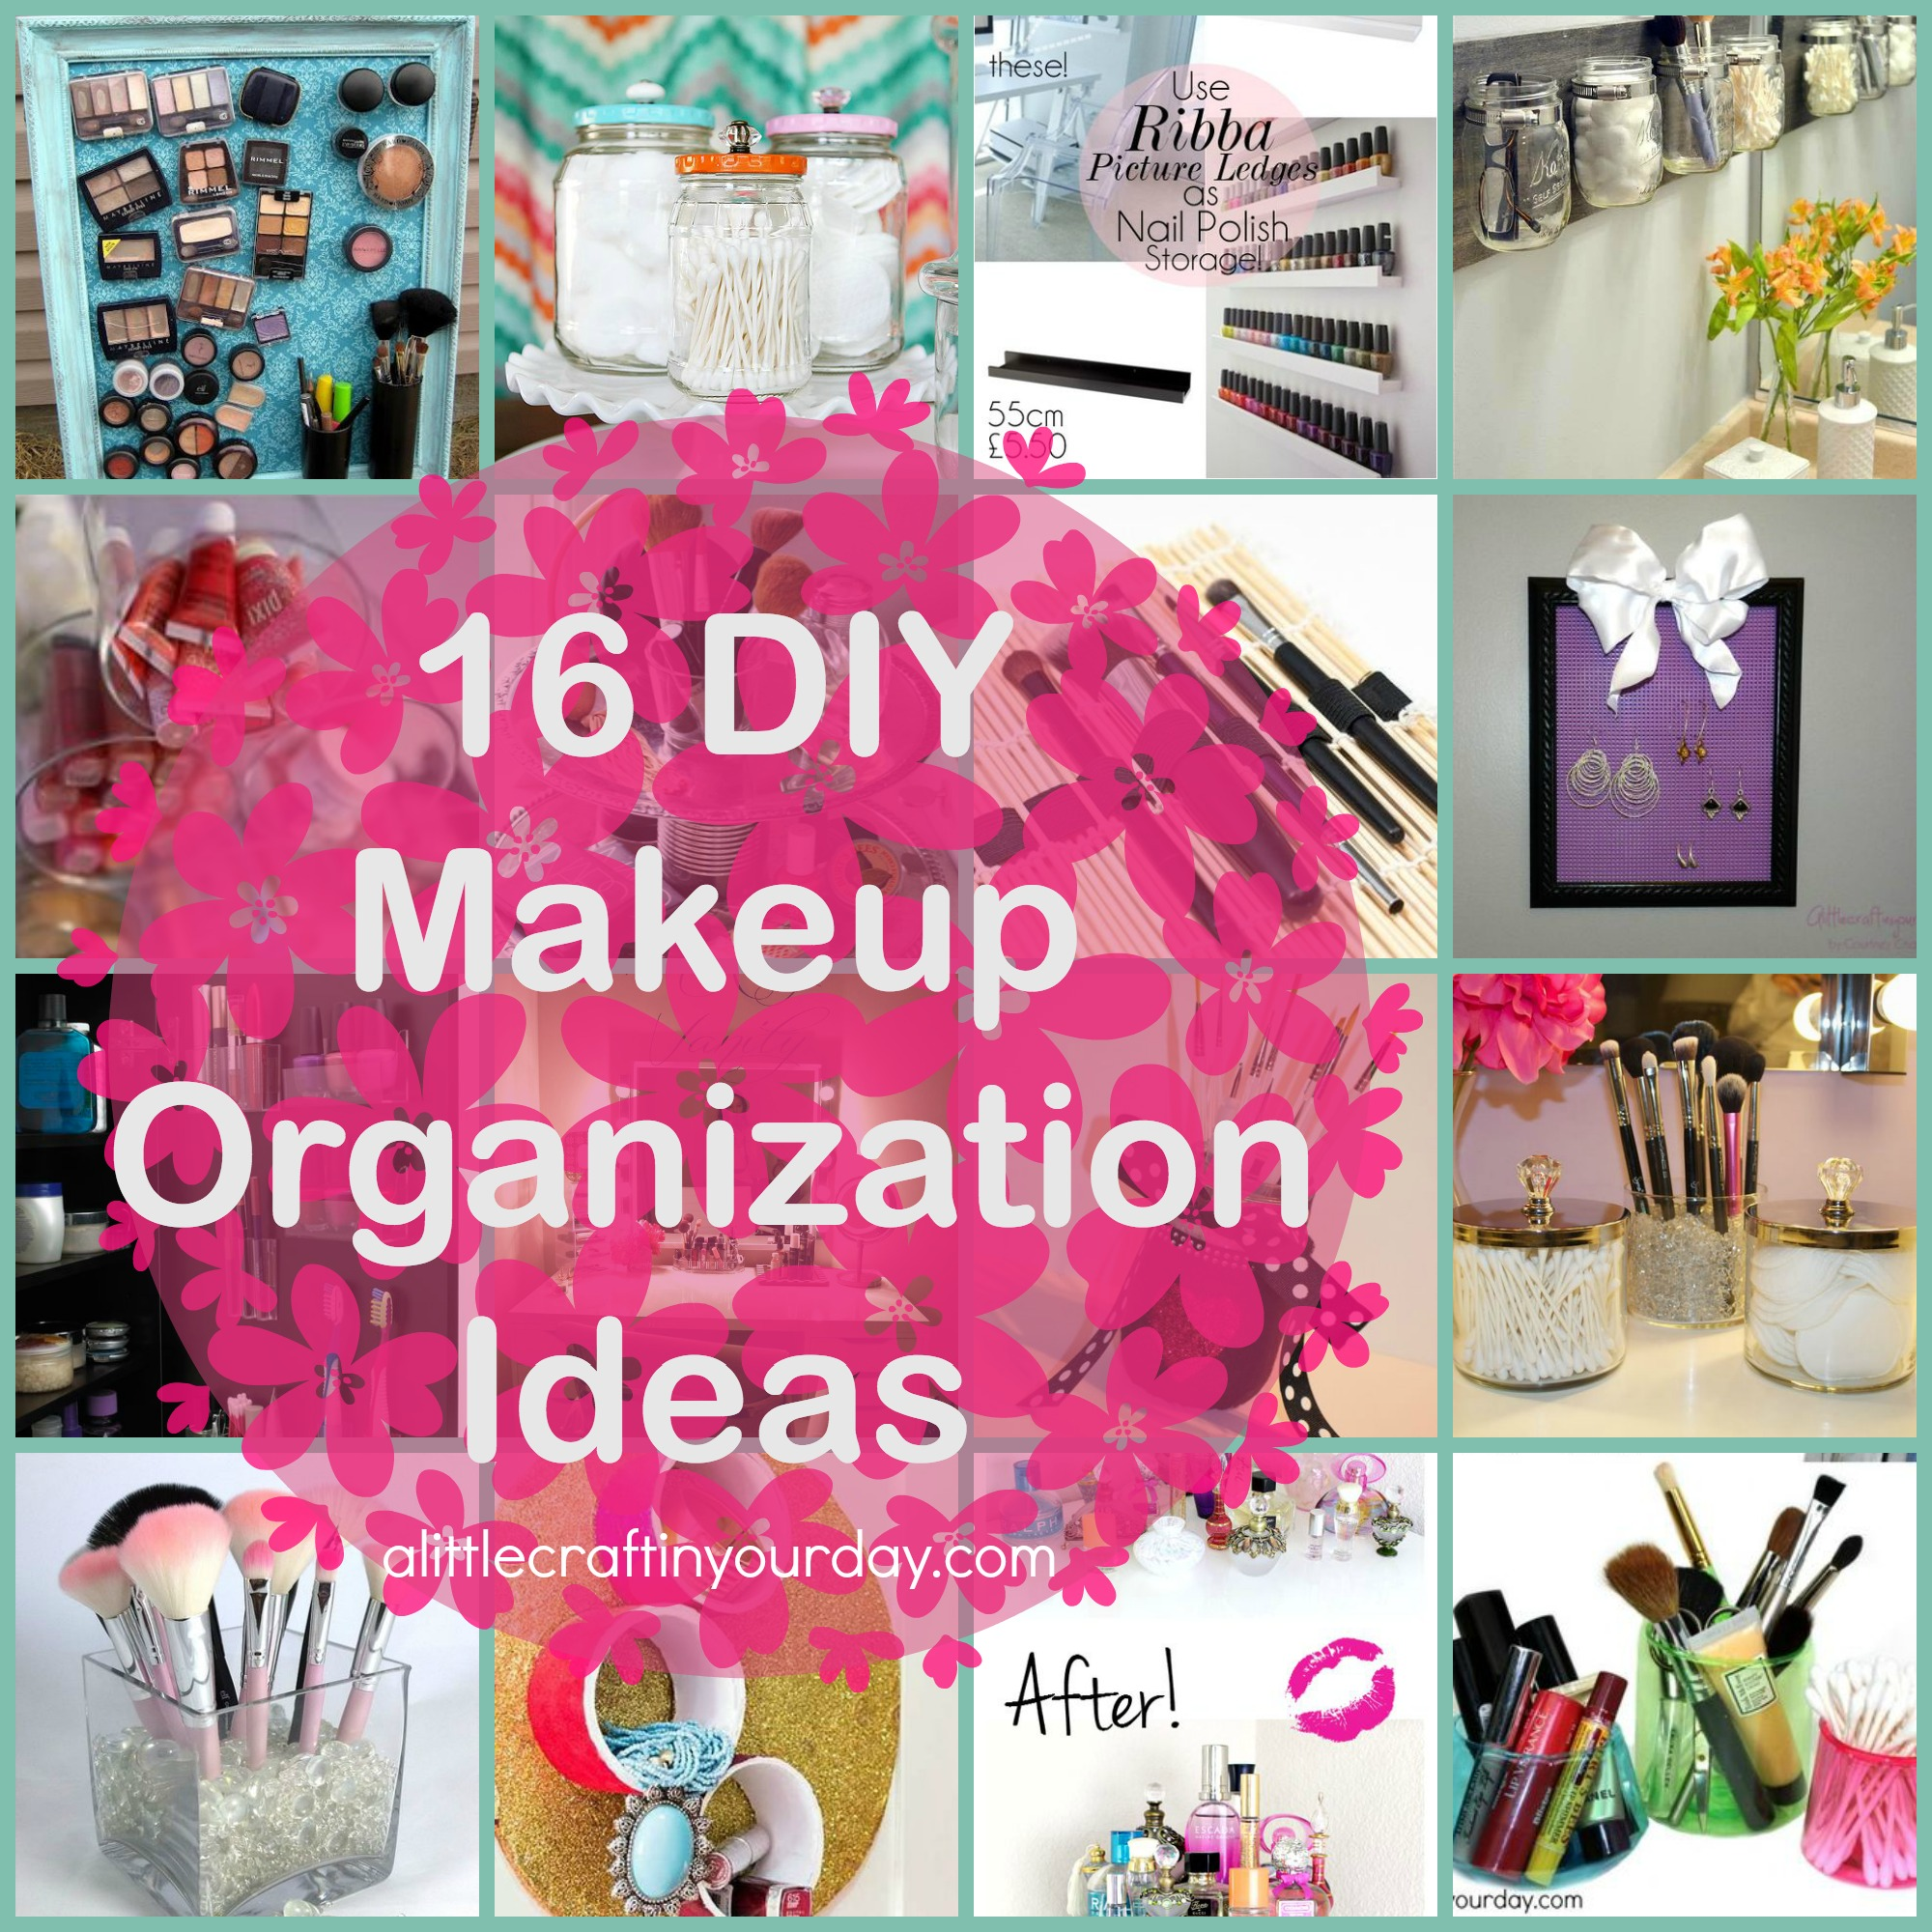 3/31 | 16 DIY Makeup Organization Ideas. 16_DIY_Makeup_Organization_Ideas  sc 1 st  A Little Craft In Your Day & 16 DIY Makeup Organization Ideas - A Little Craft In Your Day